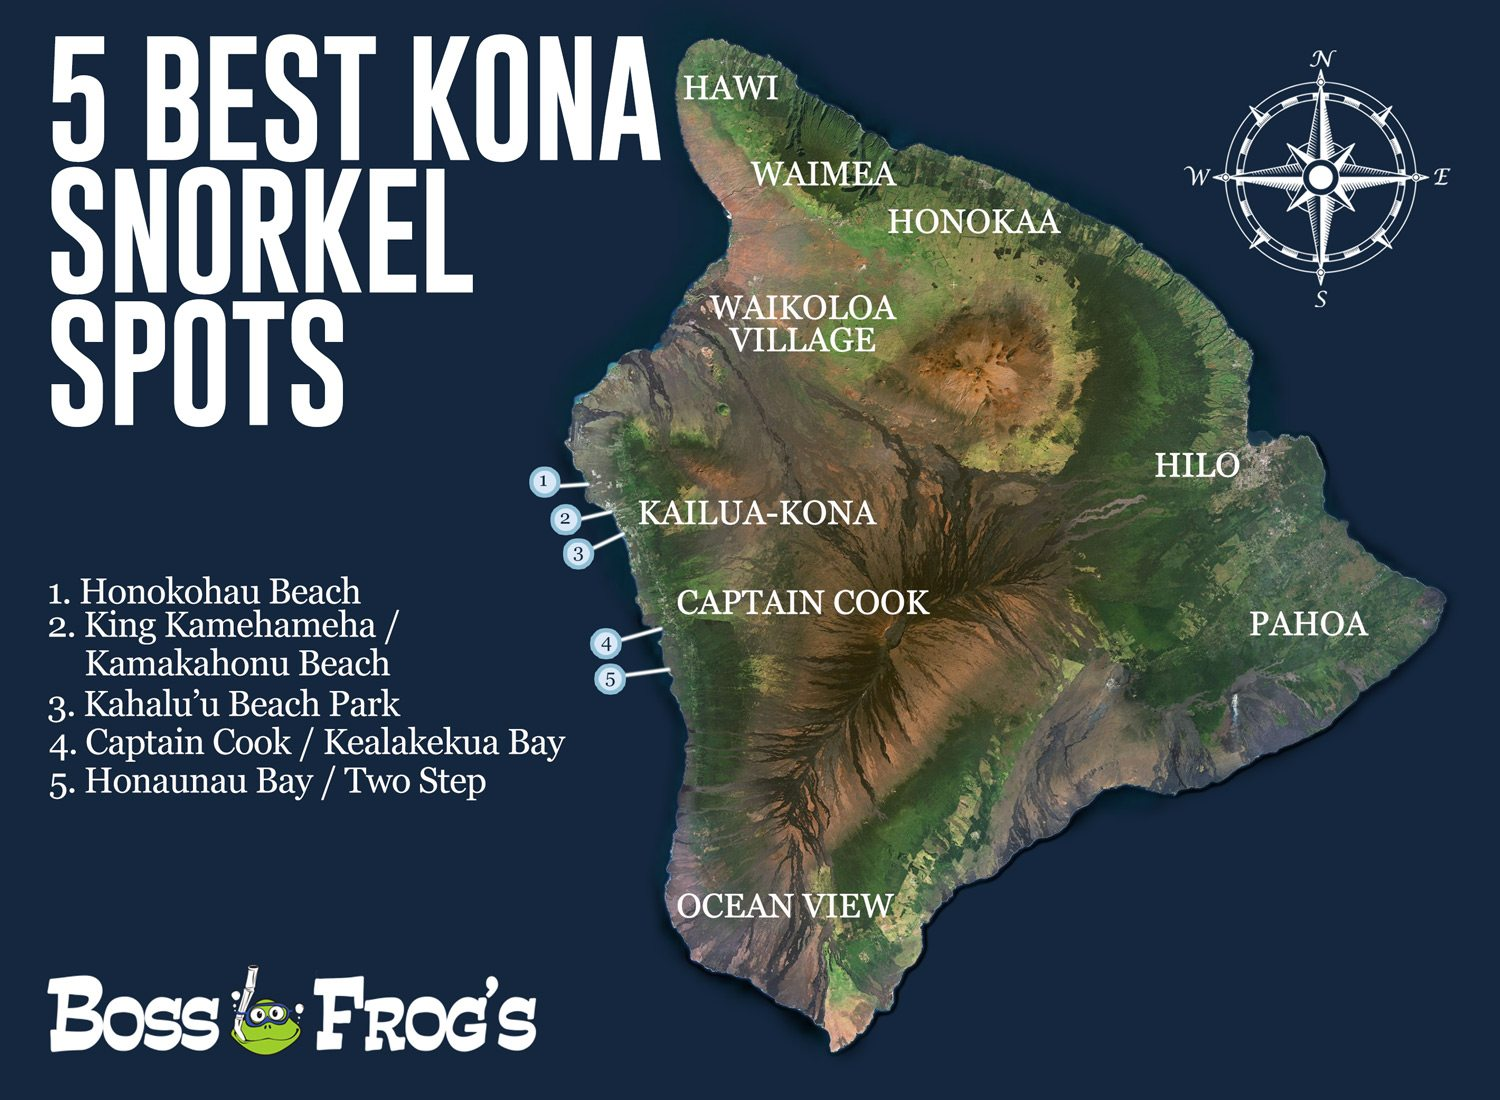 helicopter to hana with 5 Best Kona Snorkeling Spots on Snorkel Map likewise 6 Arab Stars Their Own Private Jets 878558 additionally Snorkeling additionally Snorkeling additionally Sanuk Sandle Brown Hawaiian Islands.